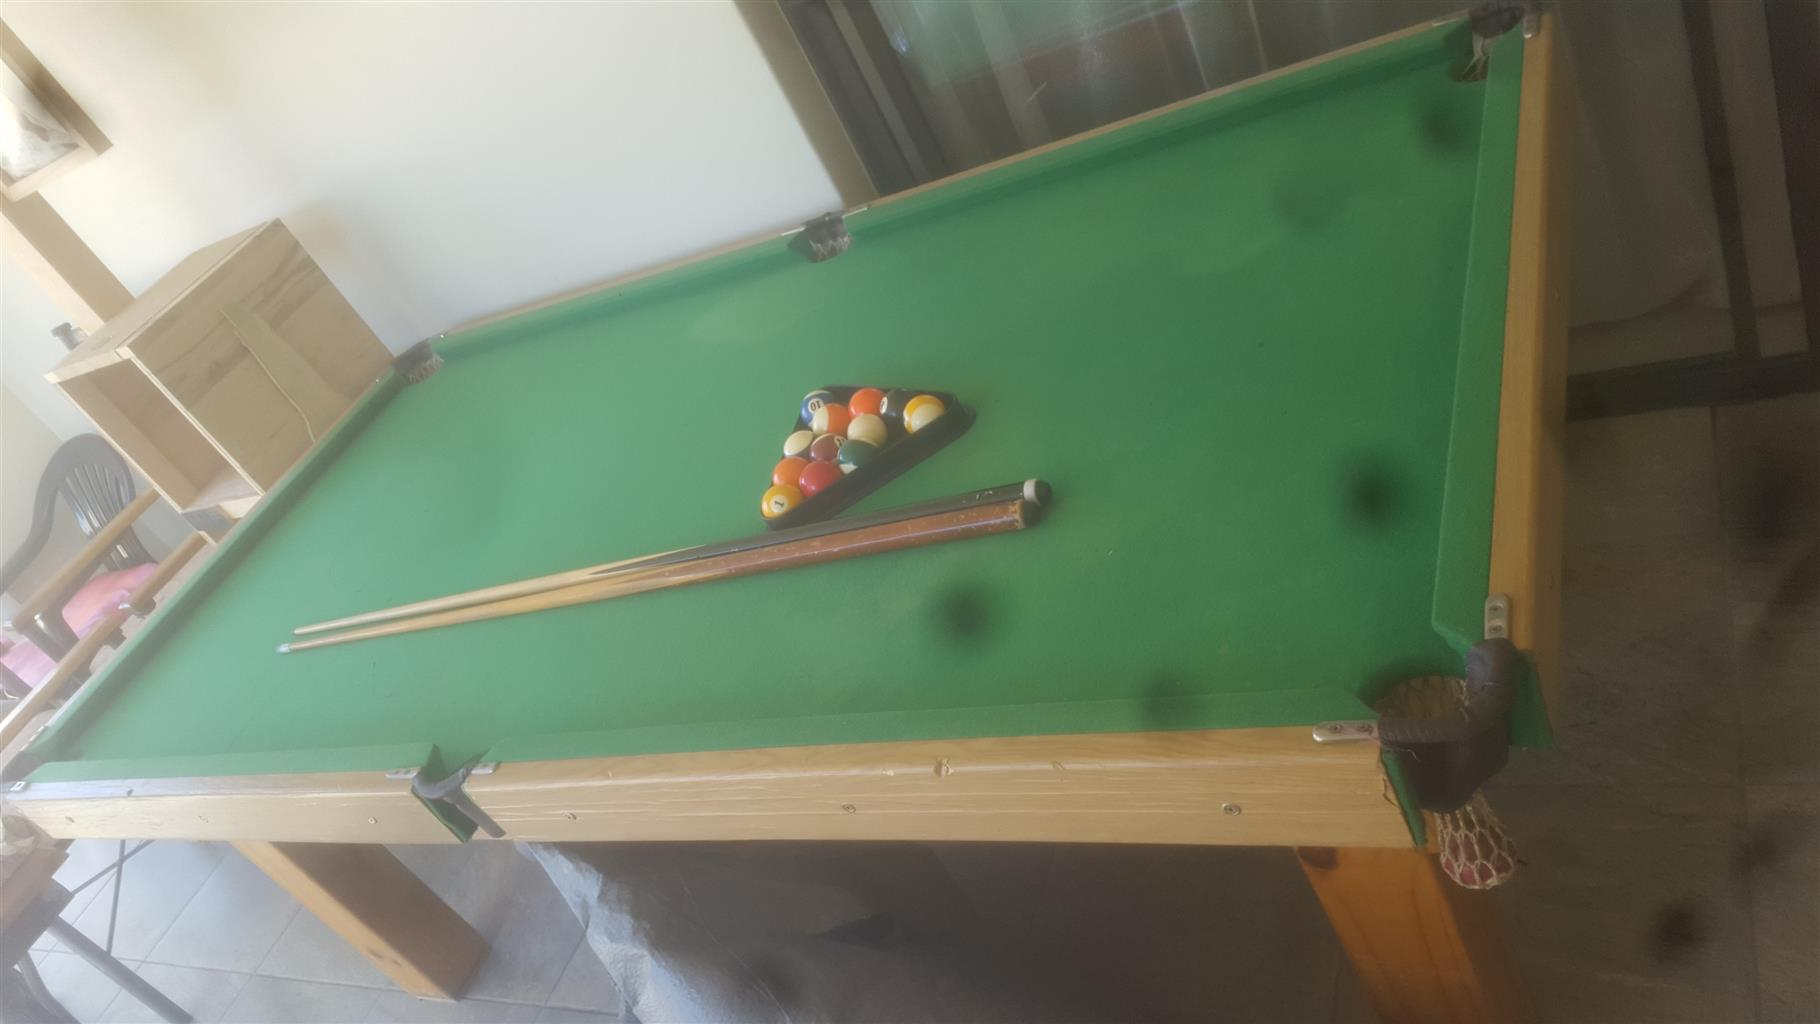 Pool table eith Accessories